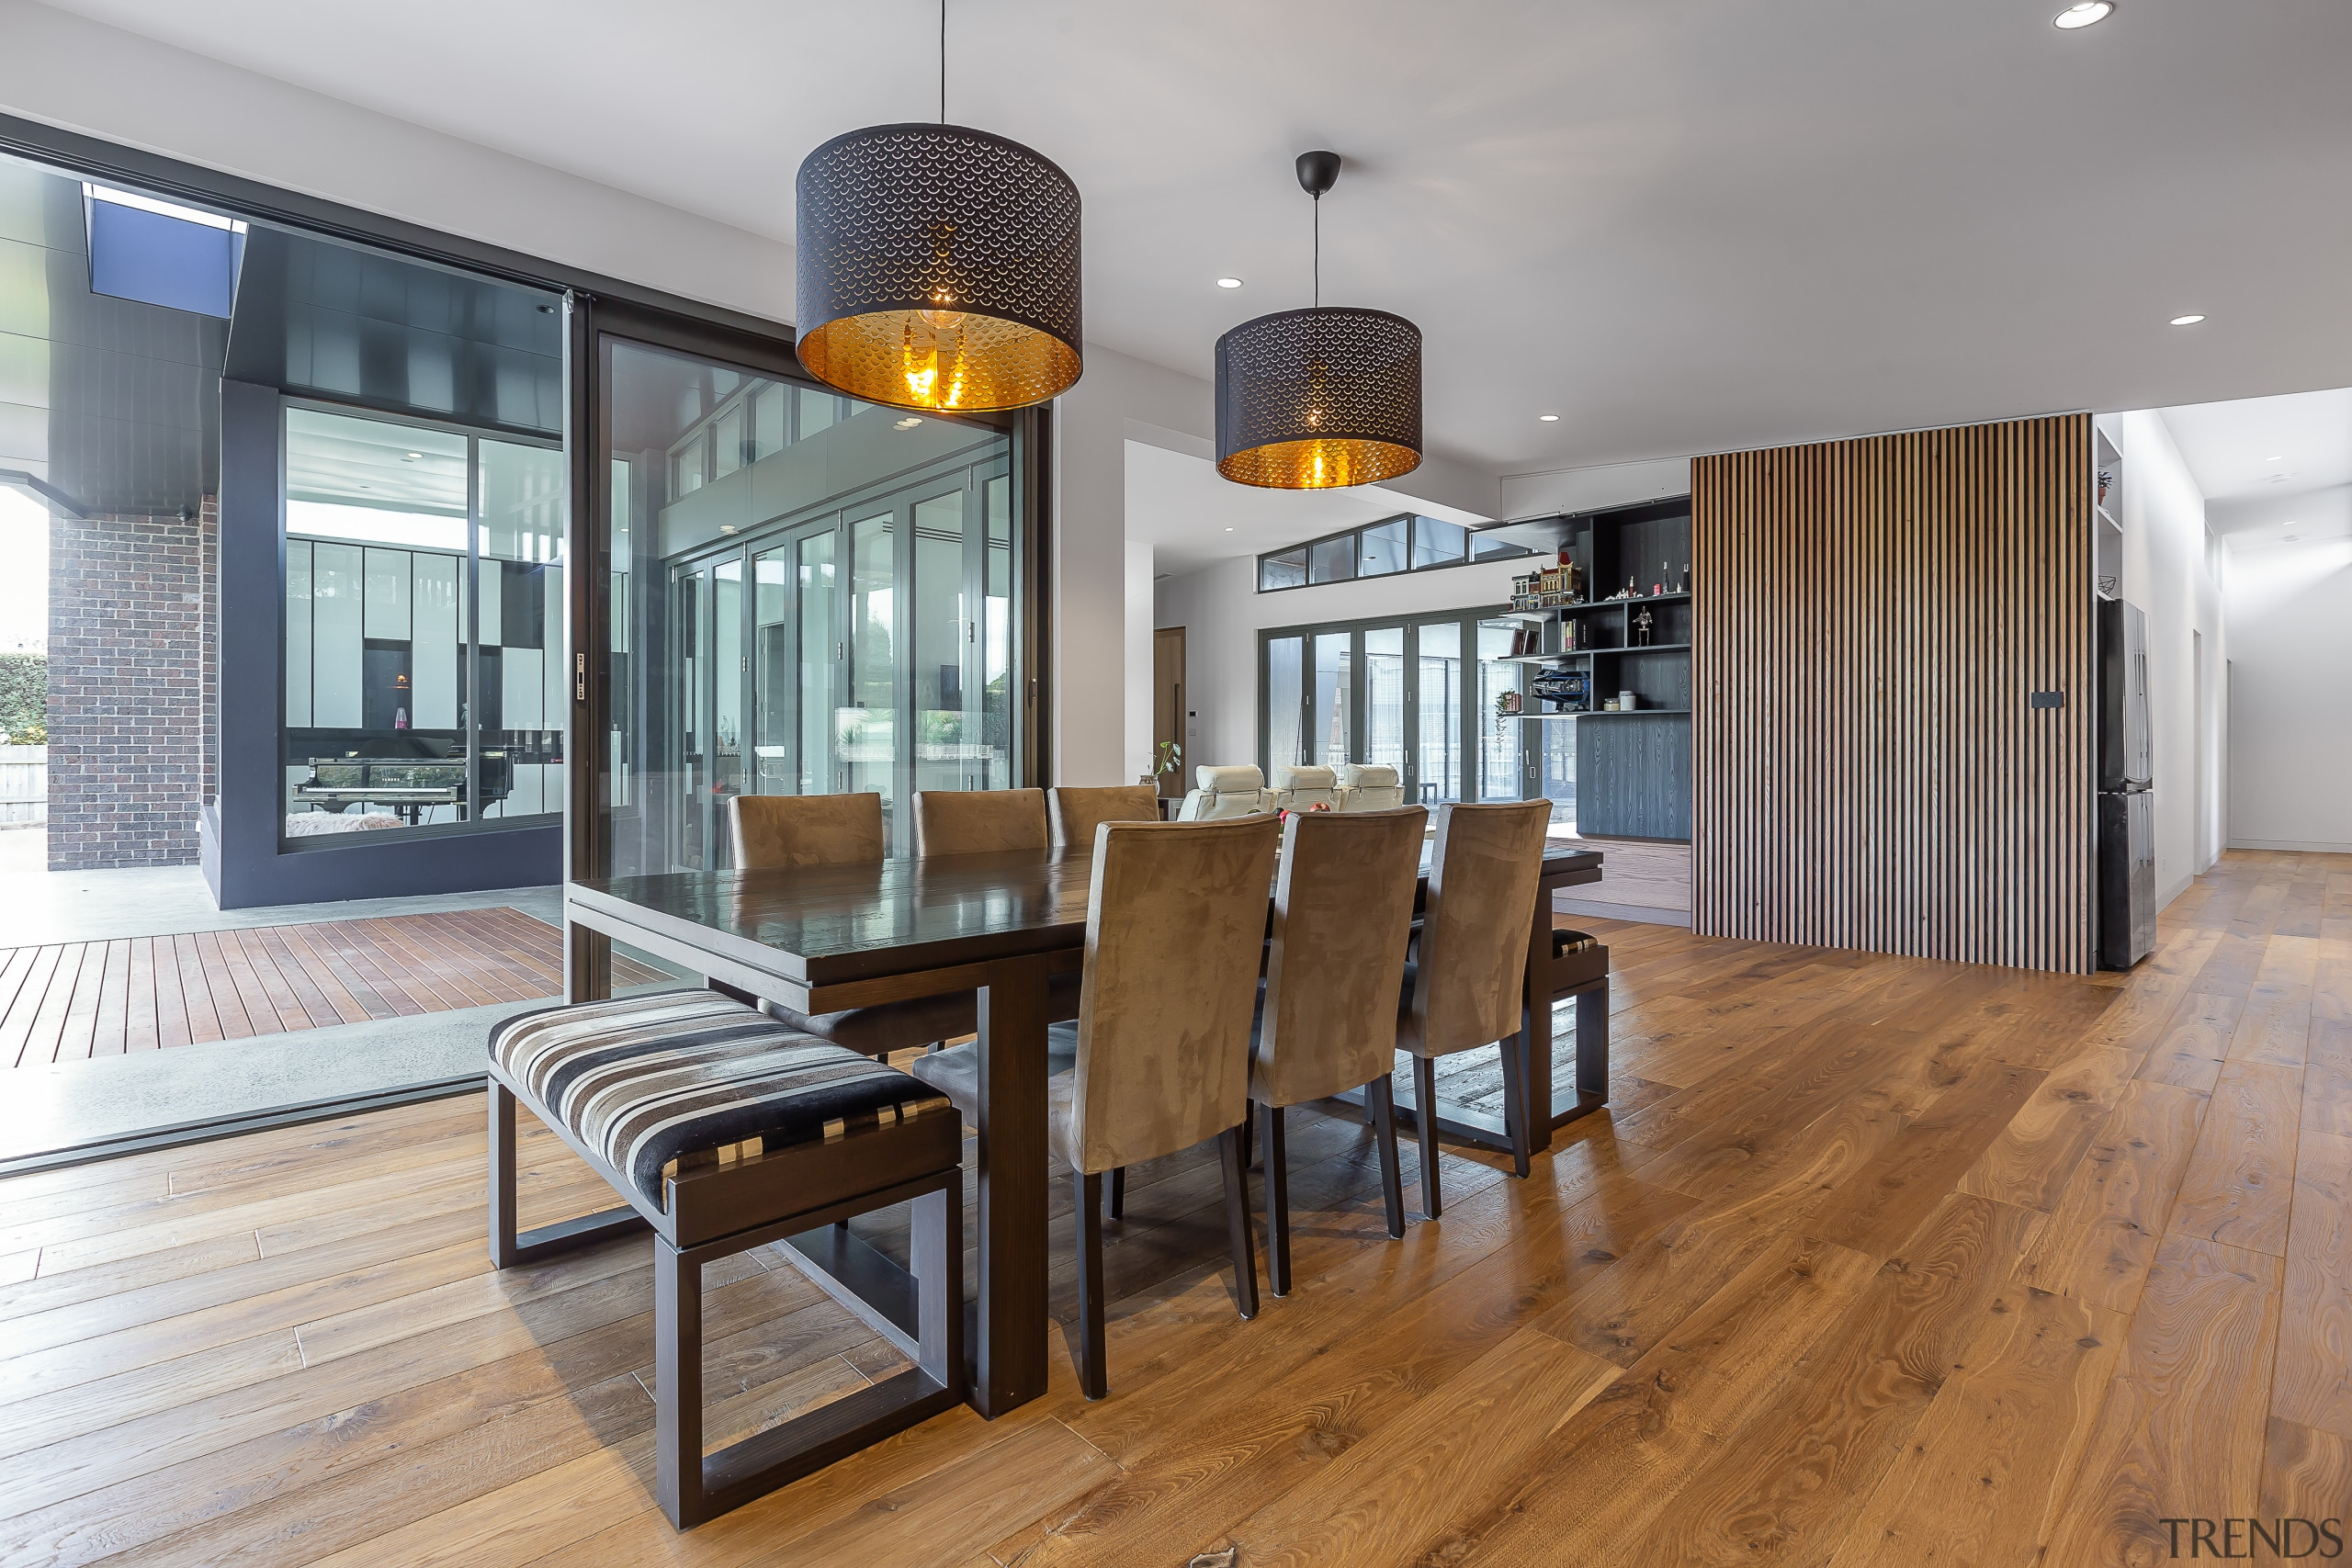 The expanded dining area in this home renovation gray